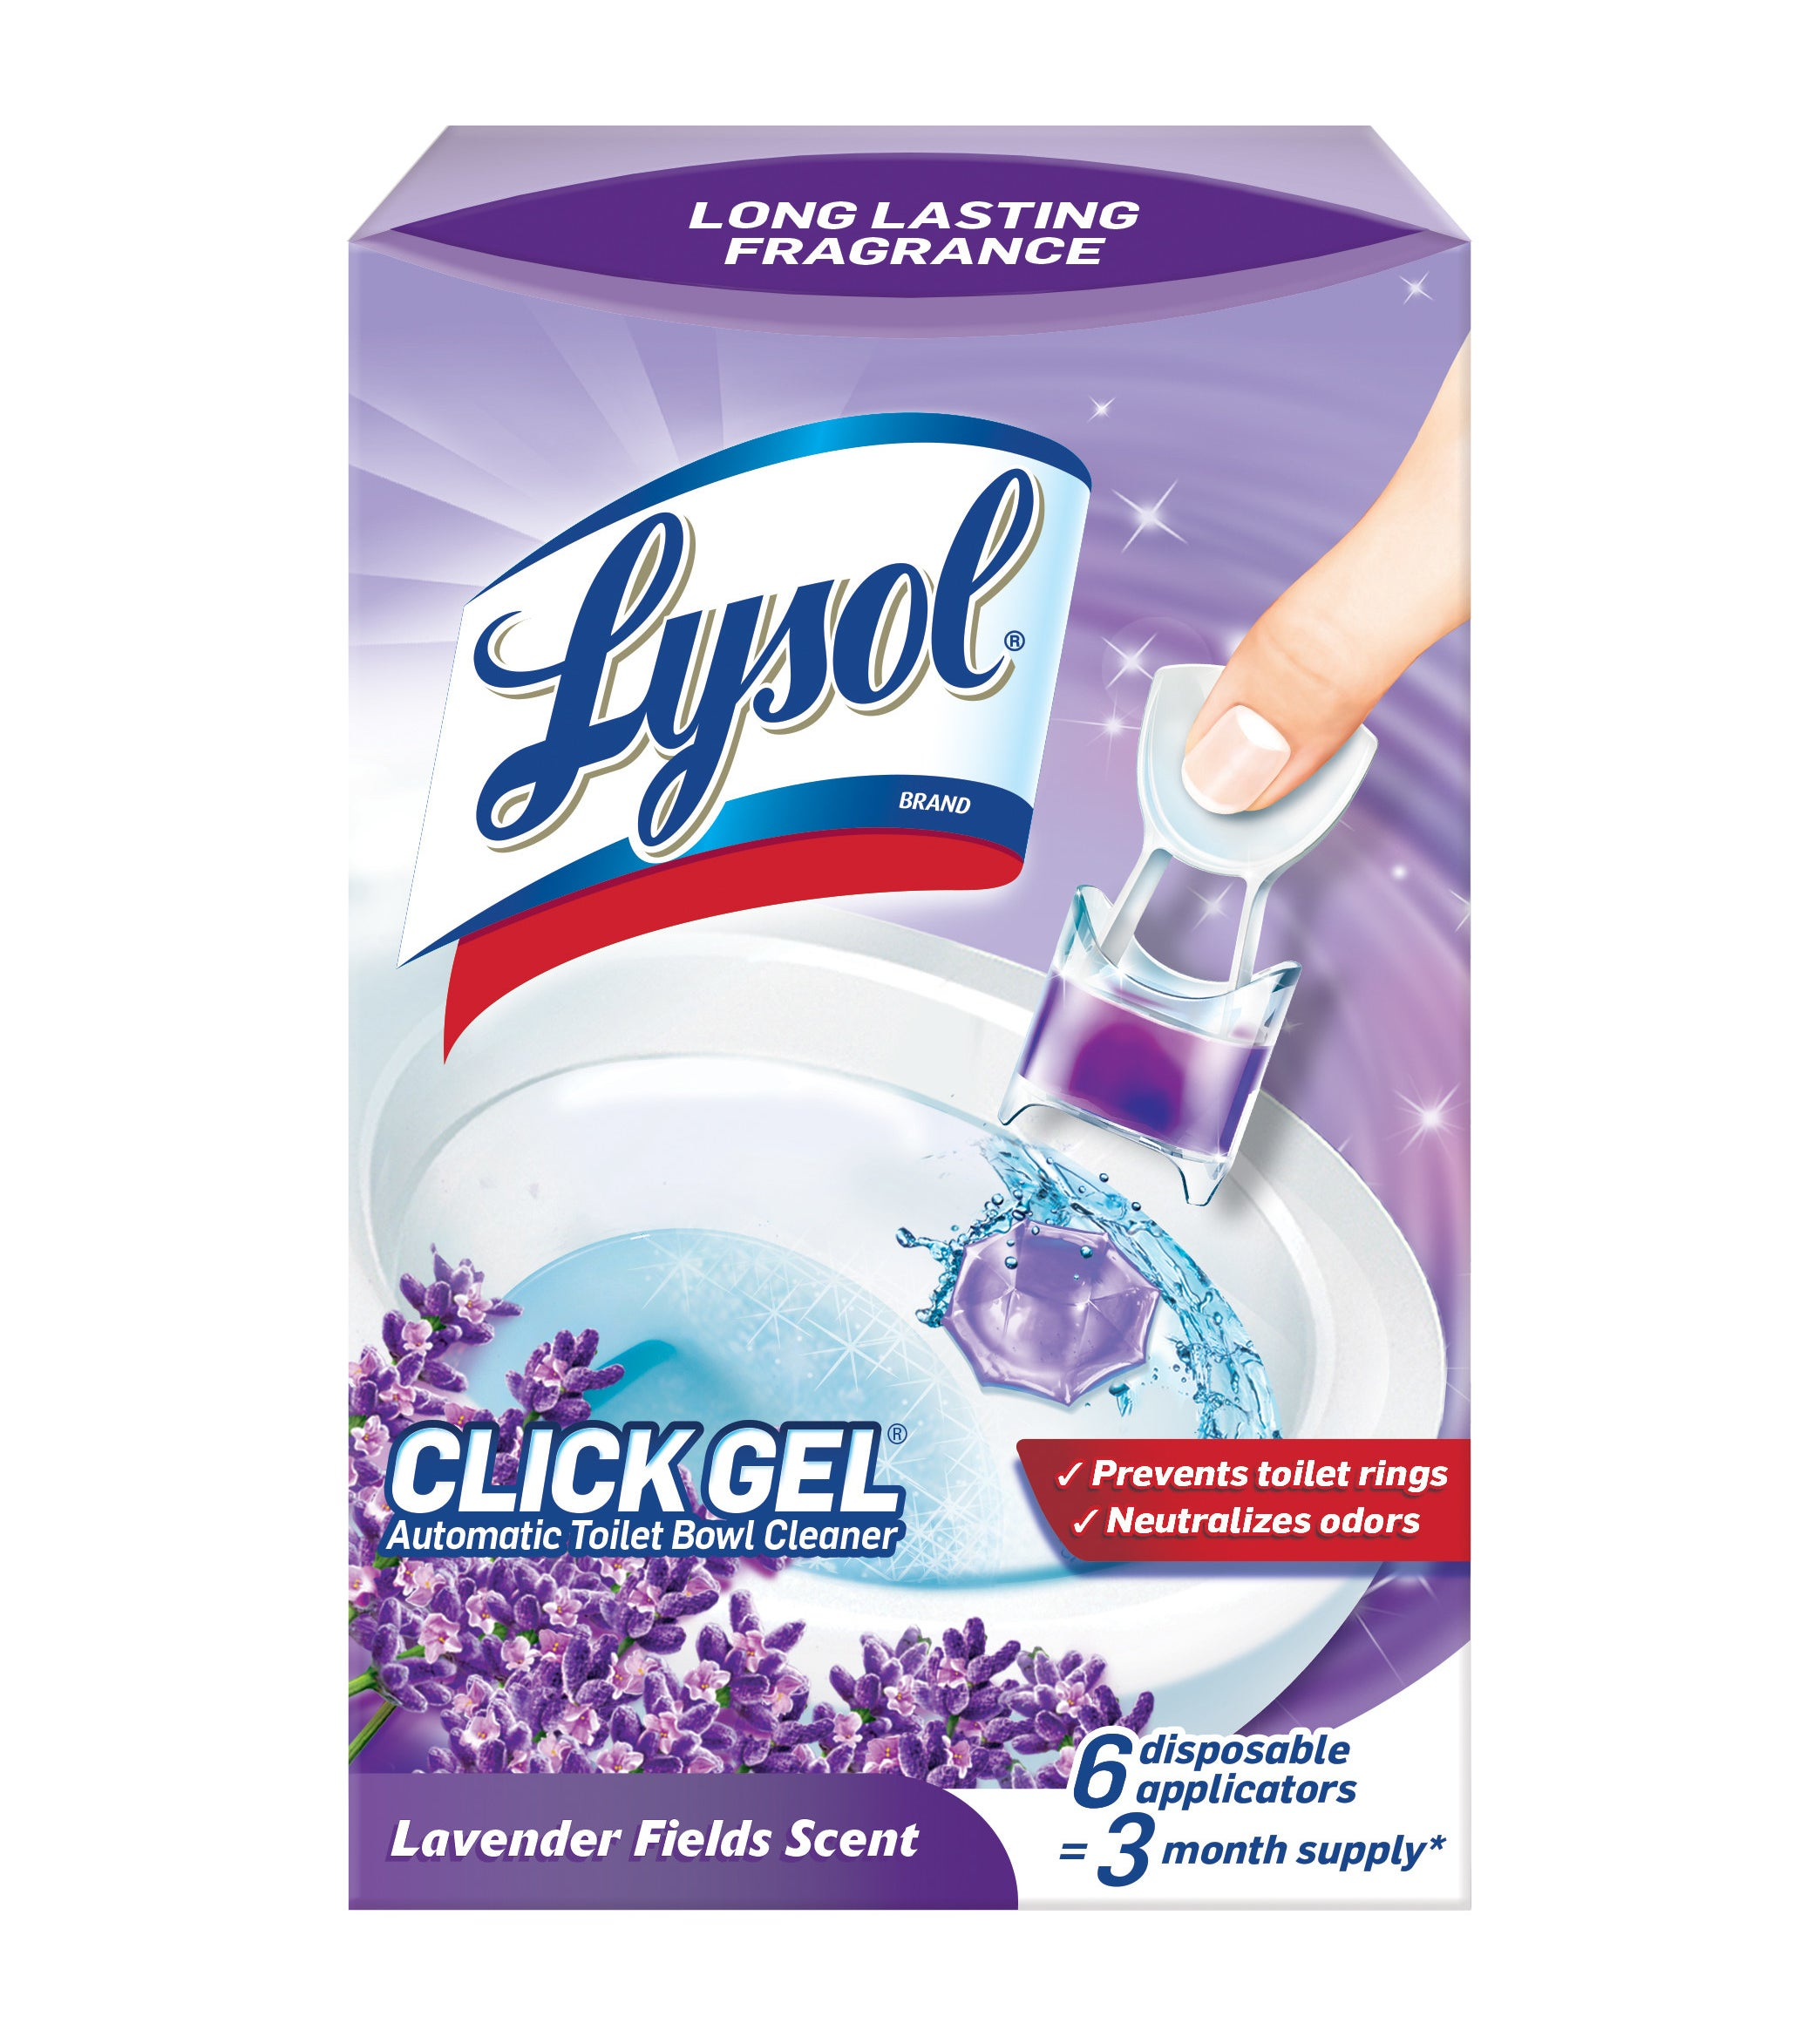 The toilet bowl cleaner